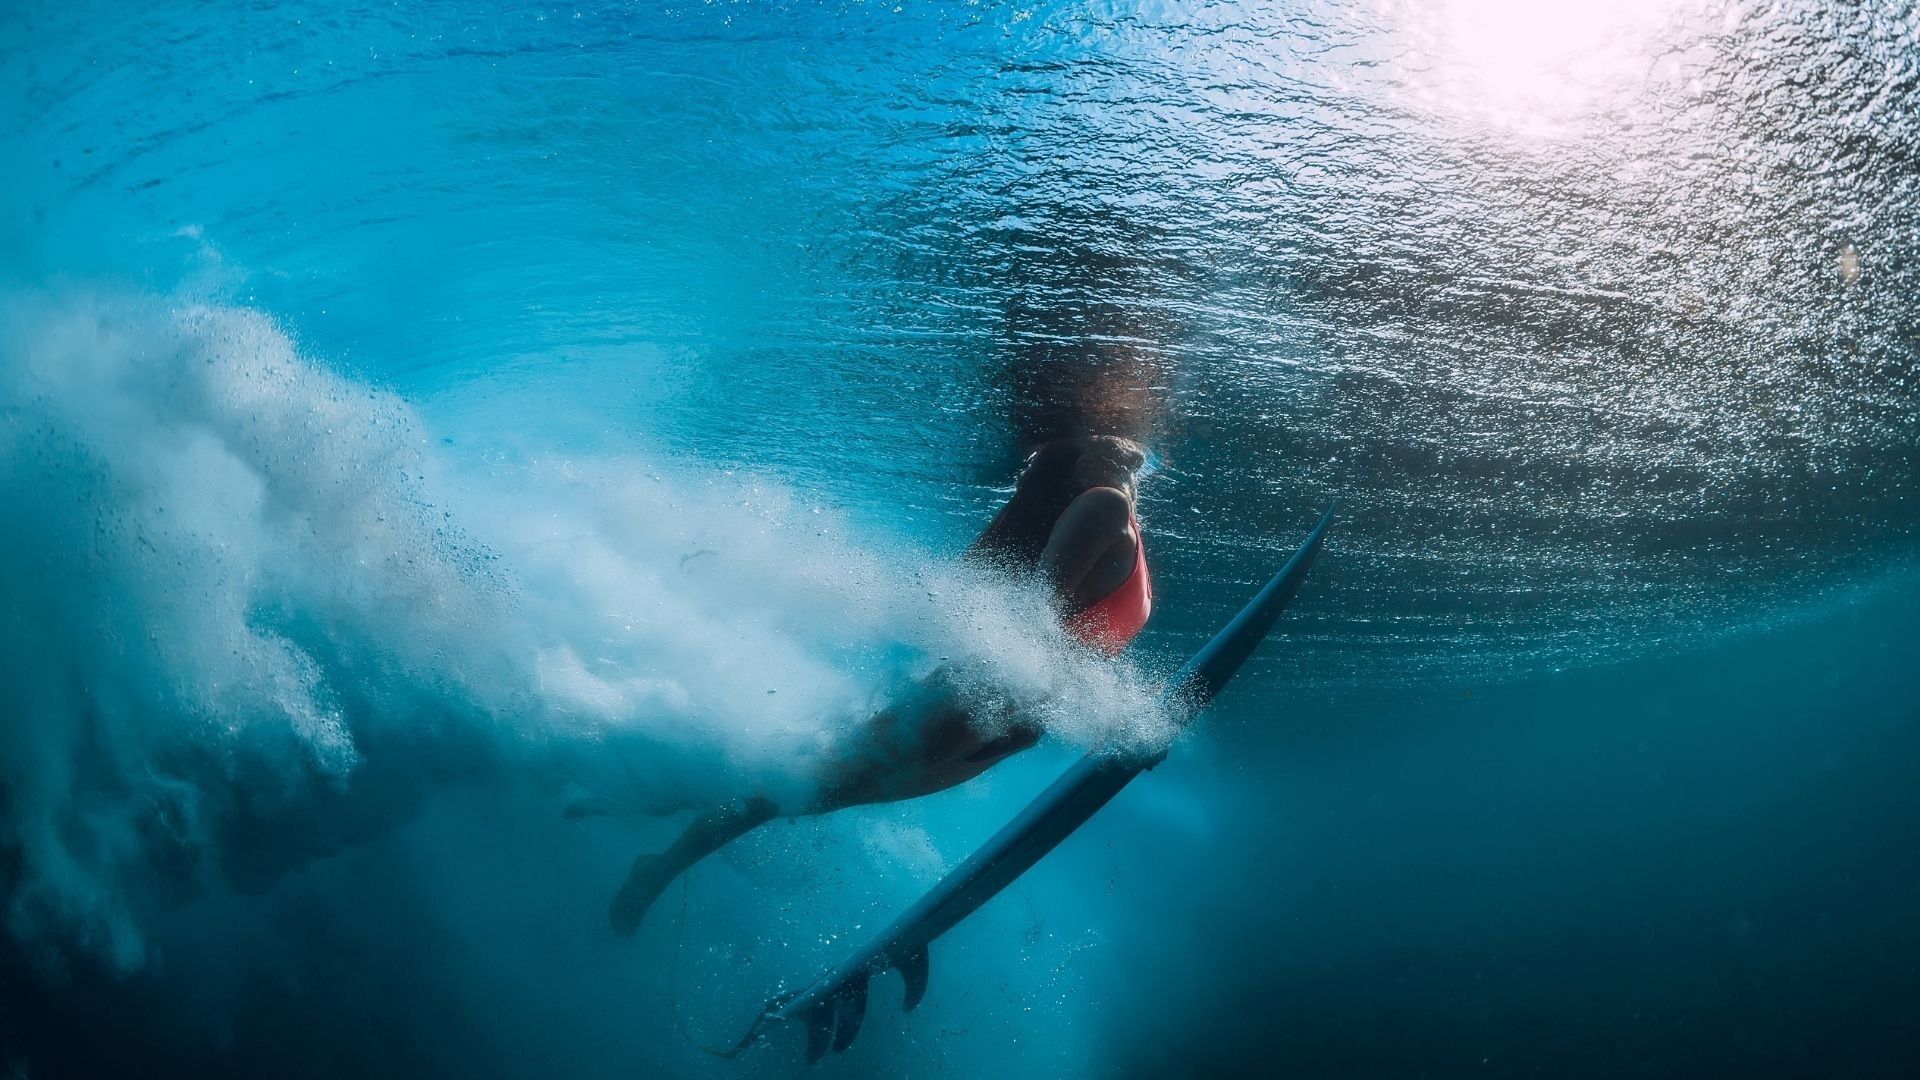 duck dive of a girl surfing